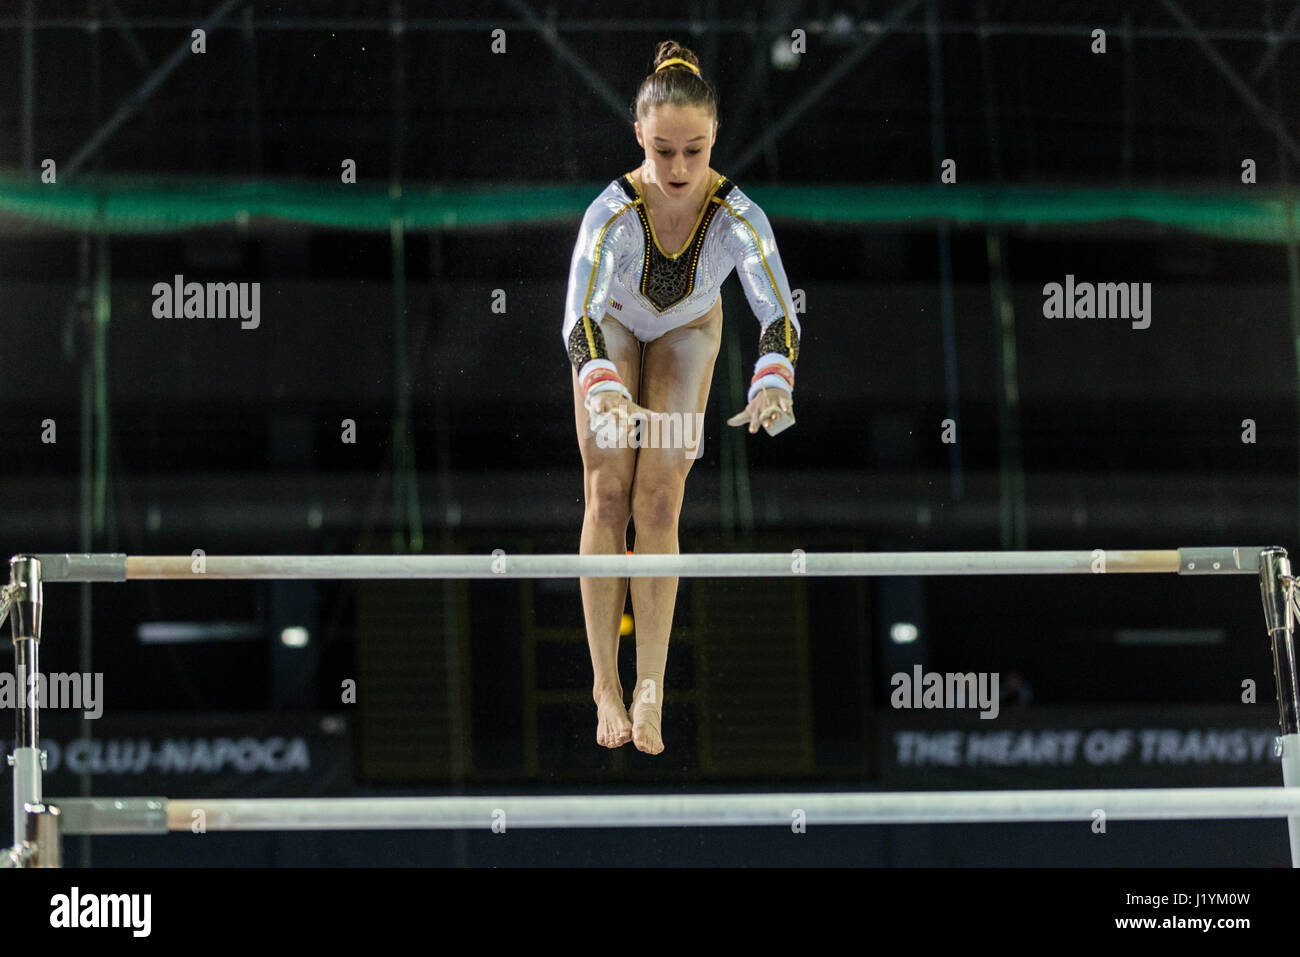 Cluj Napoca, Romania. 22nd Apr, 2017. Nina Derwael from Belgium competes at the asymmetrical bars at the UEG European - Stock Image